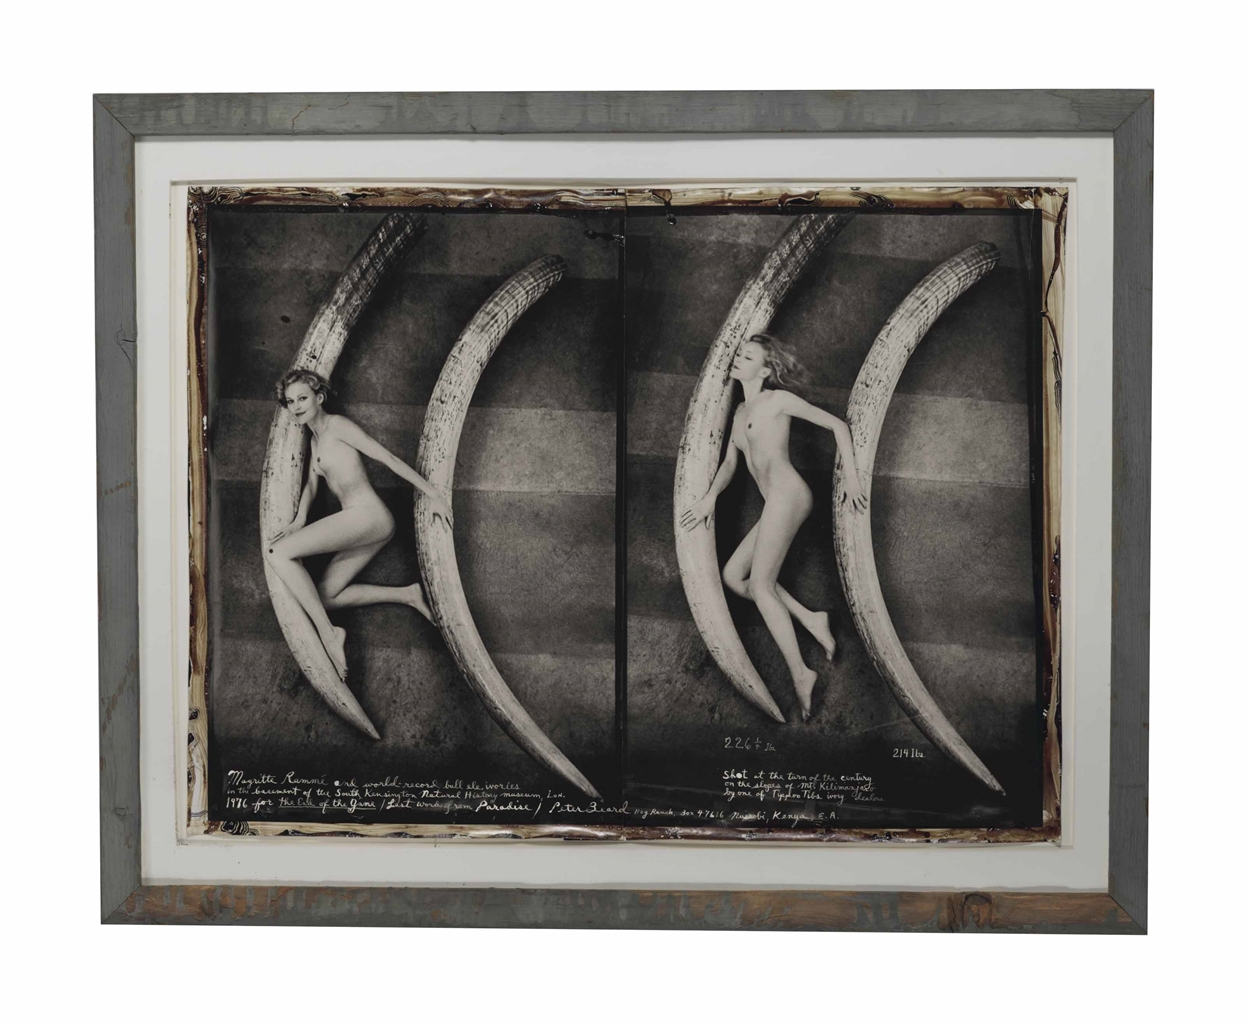 Peter Beard-Margritte Rammé and world record bull ele. ivories-1976